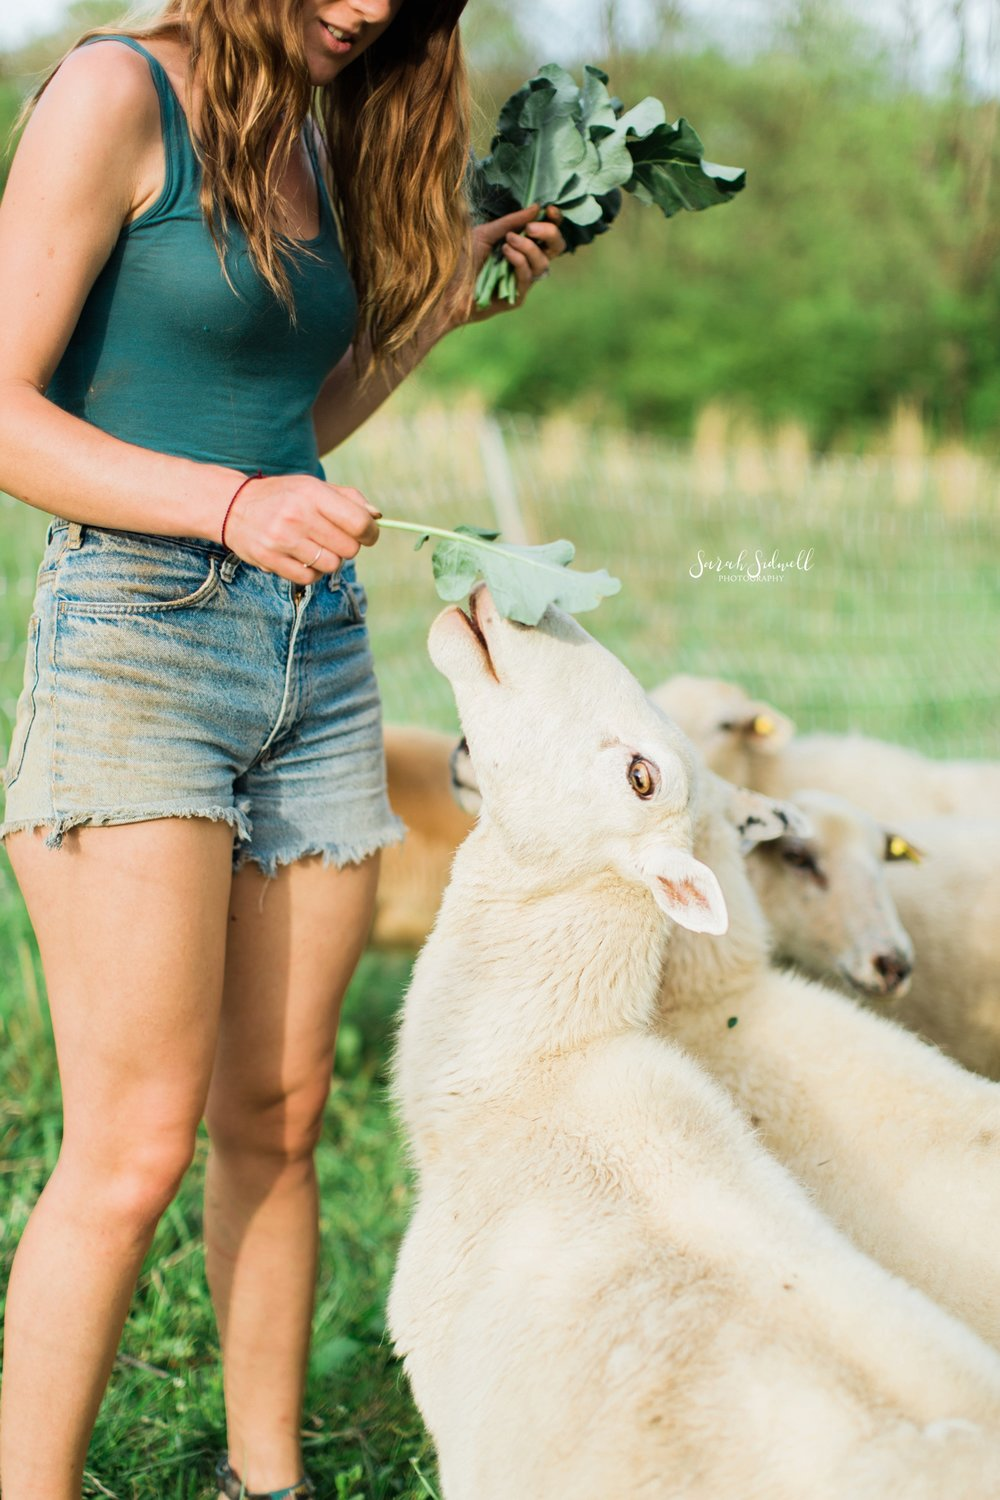 Sheep eat out of a woman's hand